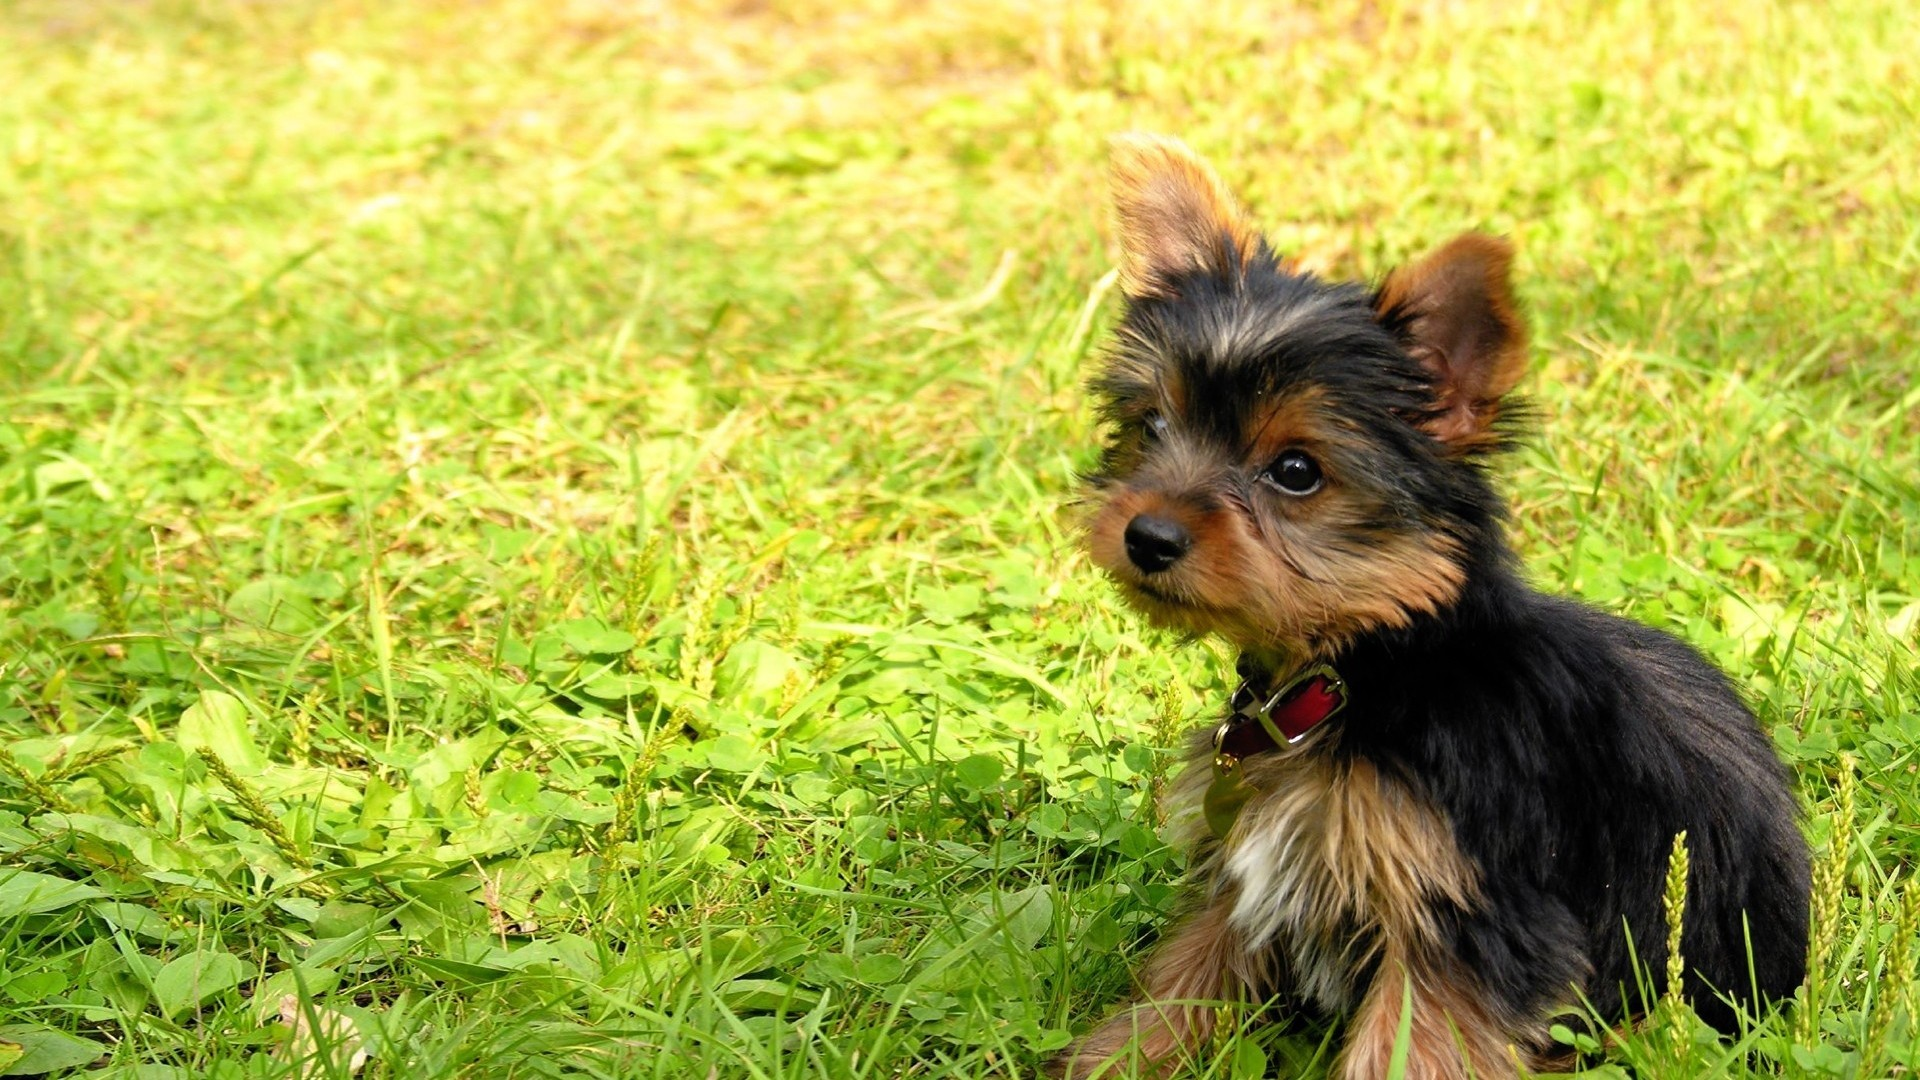 Preview wallpaper yorkshire terrier, puppy, baby, dog, grass 1920×1080